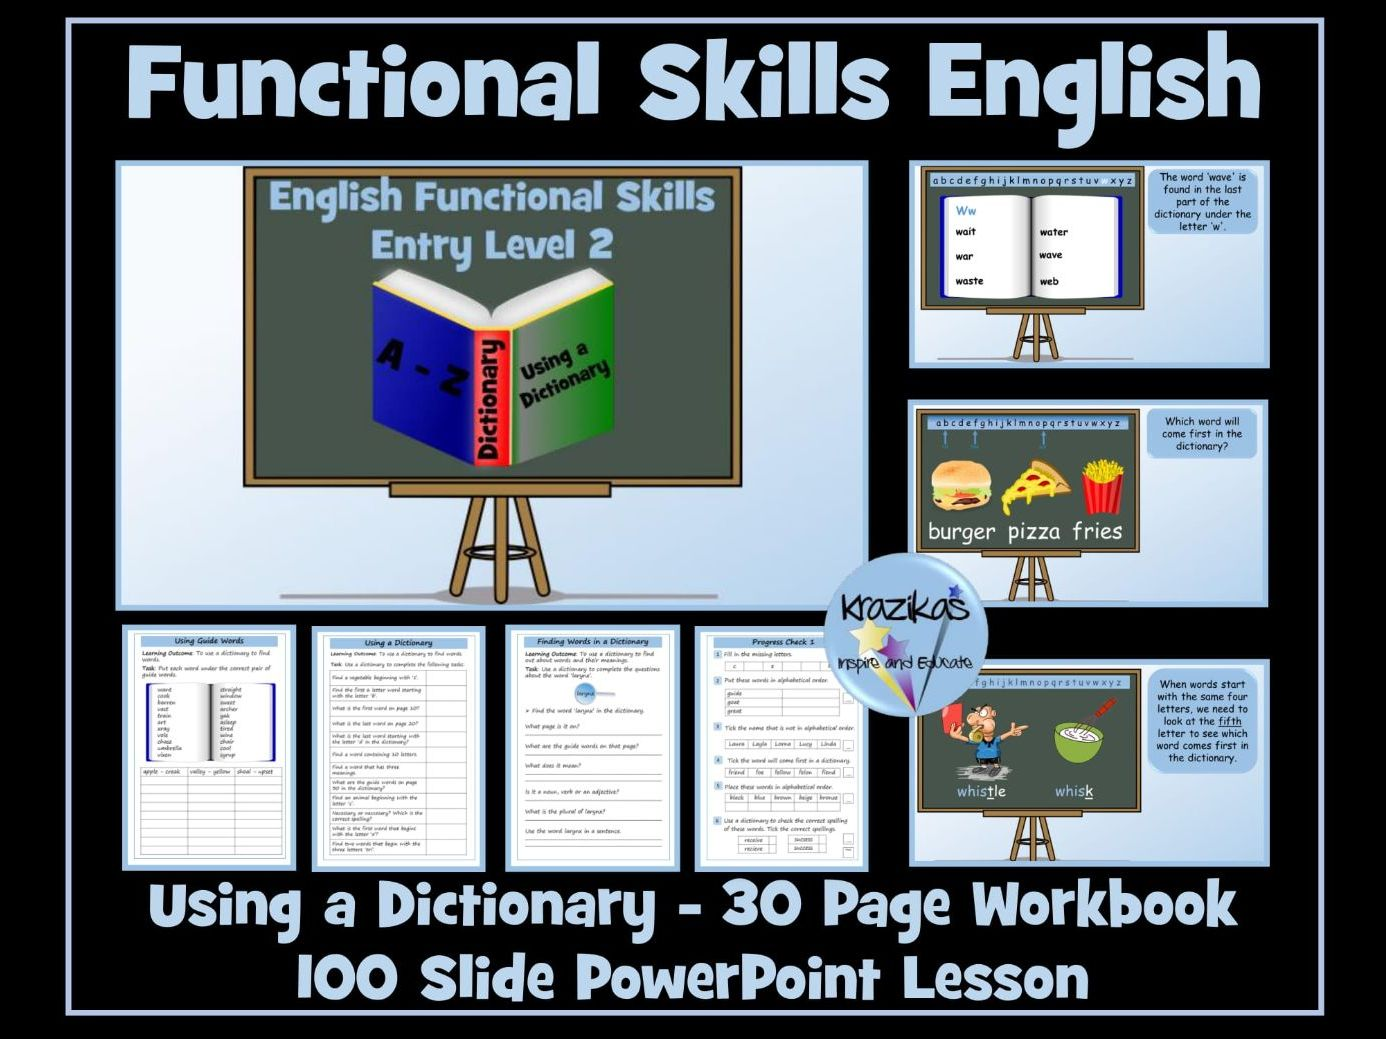 Entry Level 2 English - Using a Dictionary